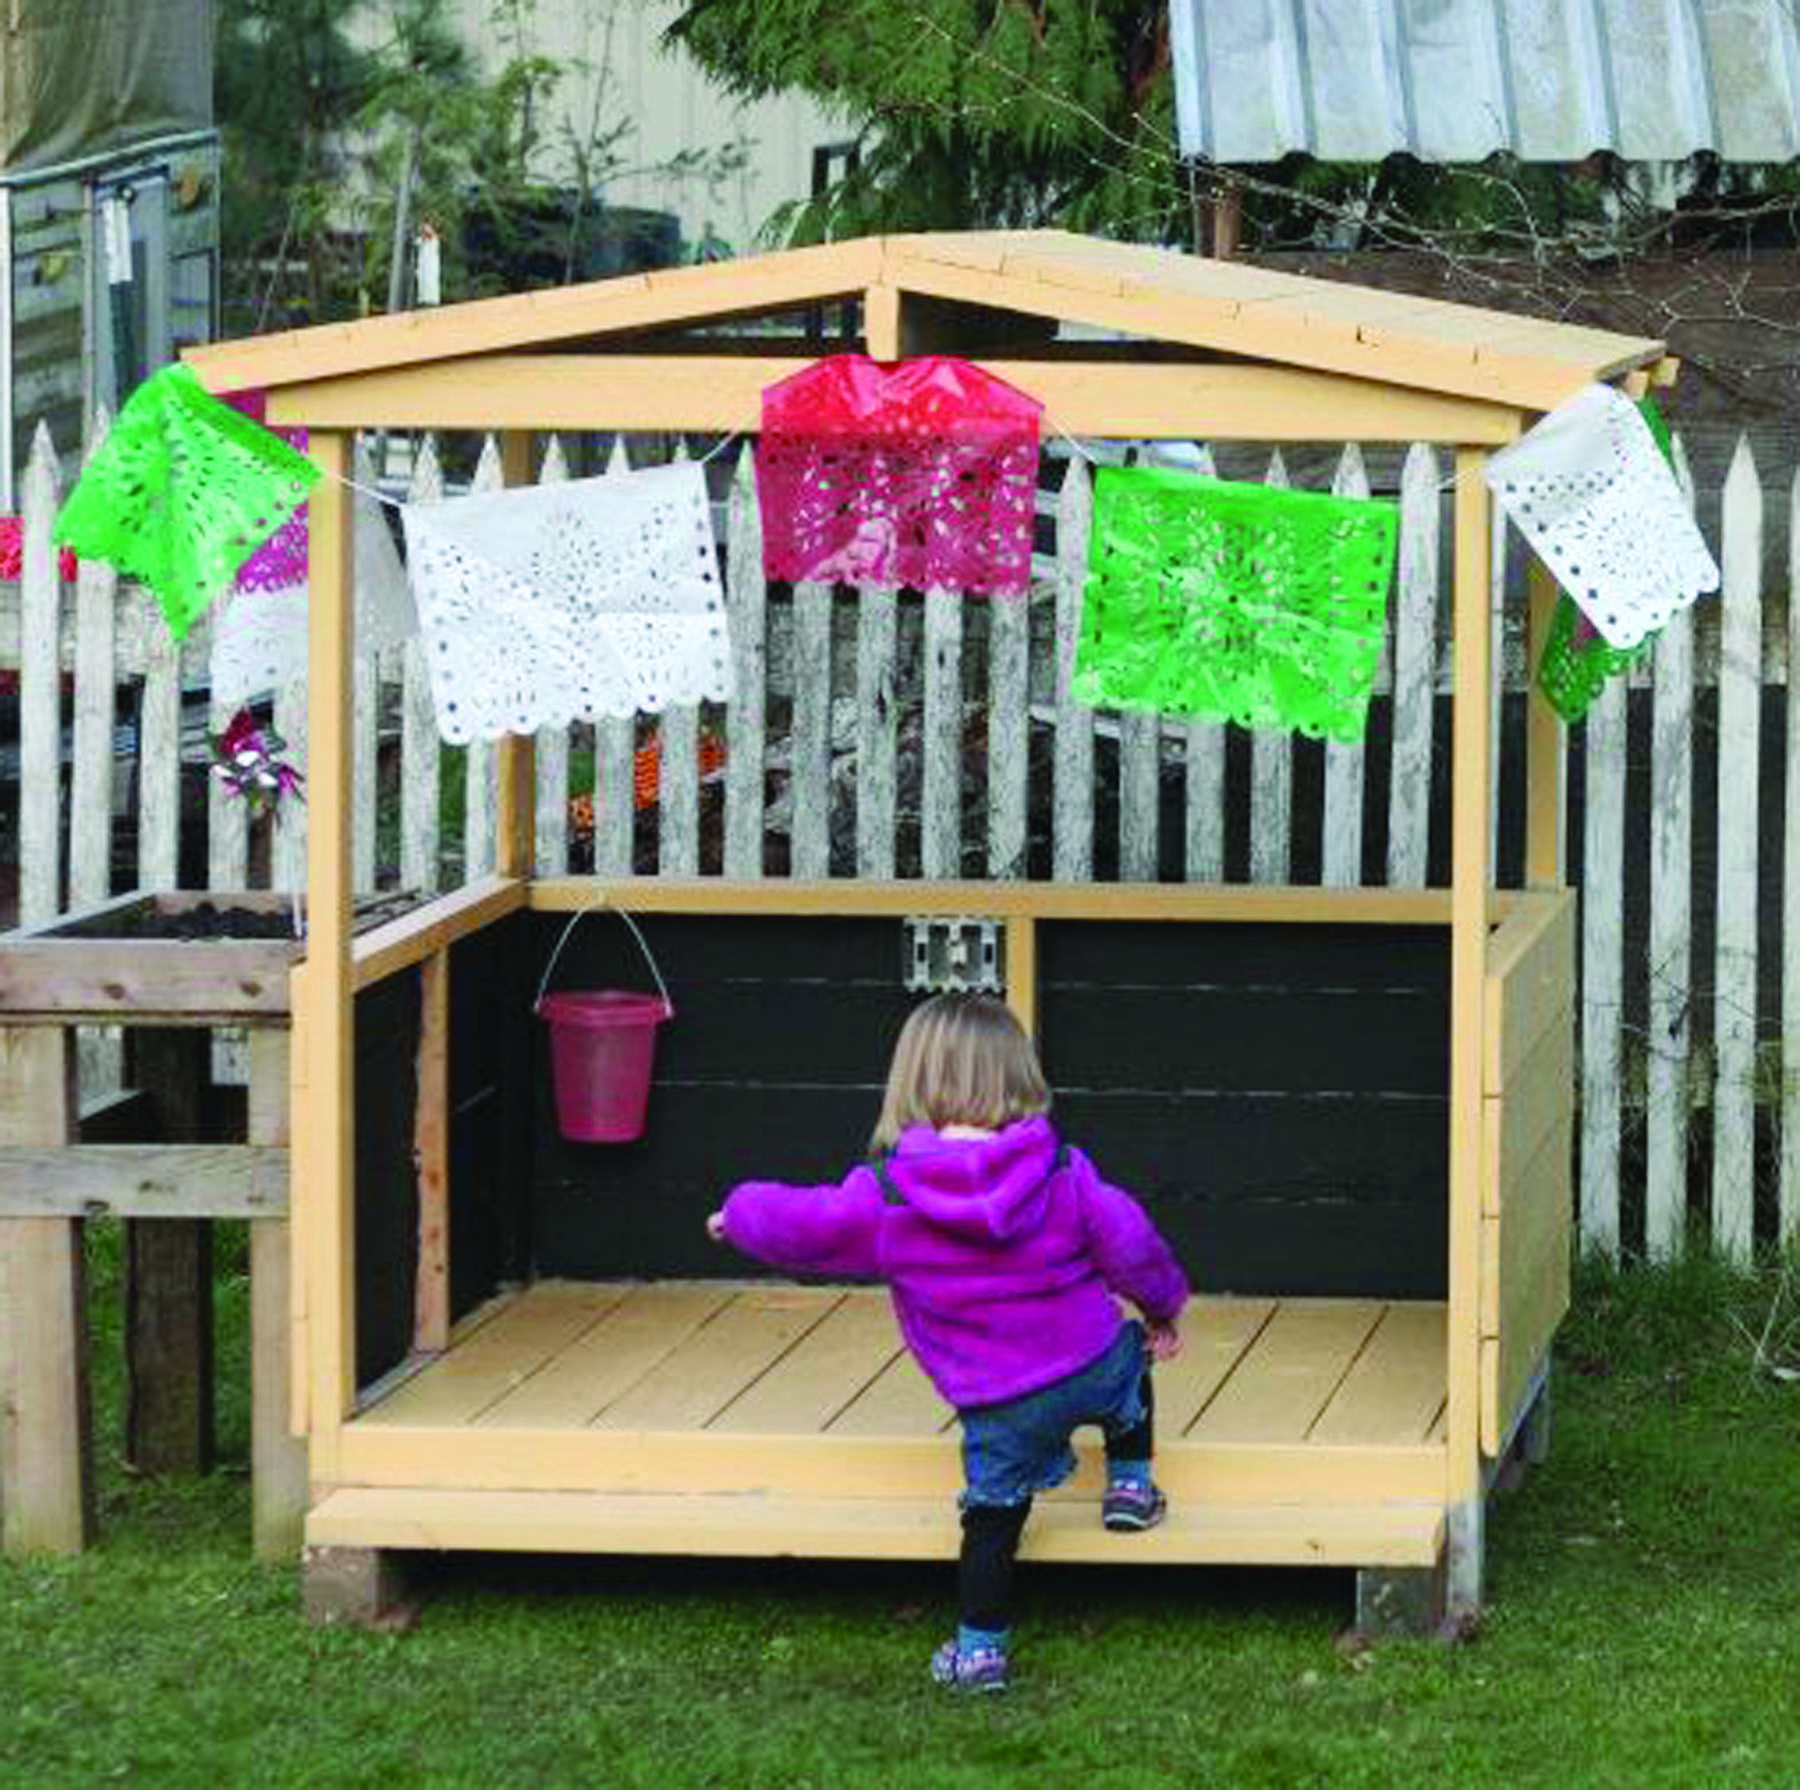 easy and good ideas using wooden pallets photo of a pallet made playhouse using - Garden Ideas Using Wooden Pallets